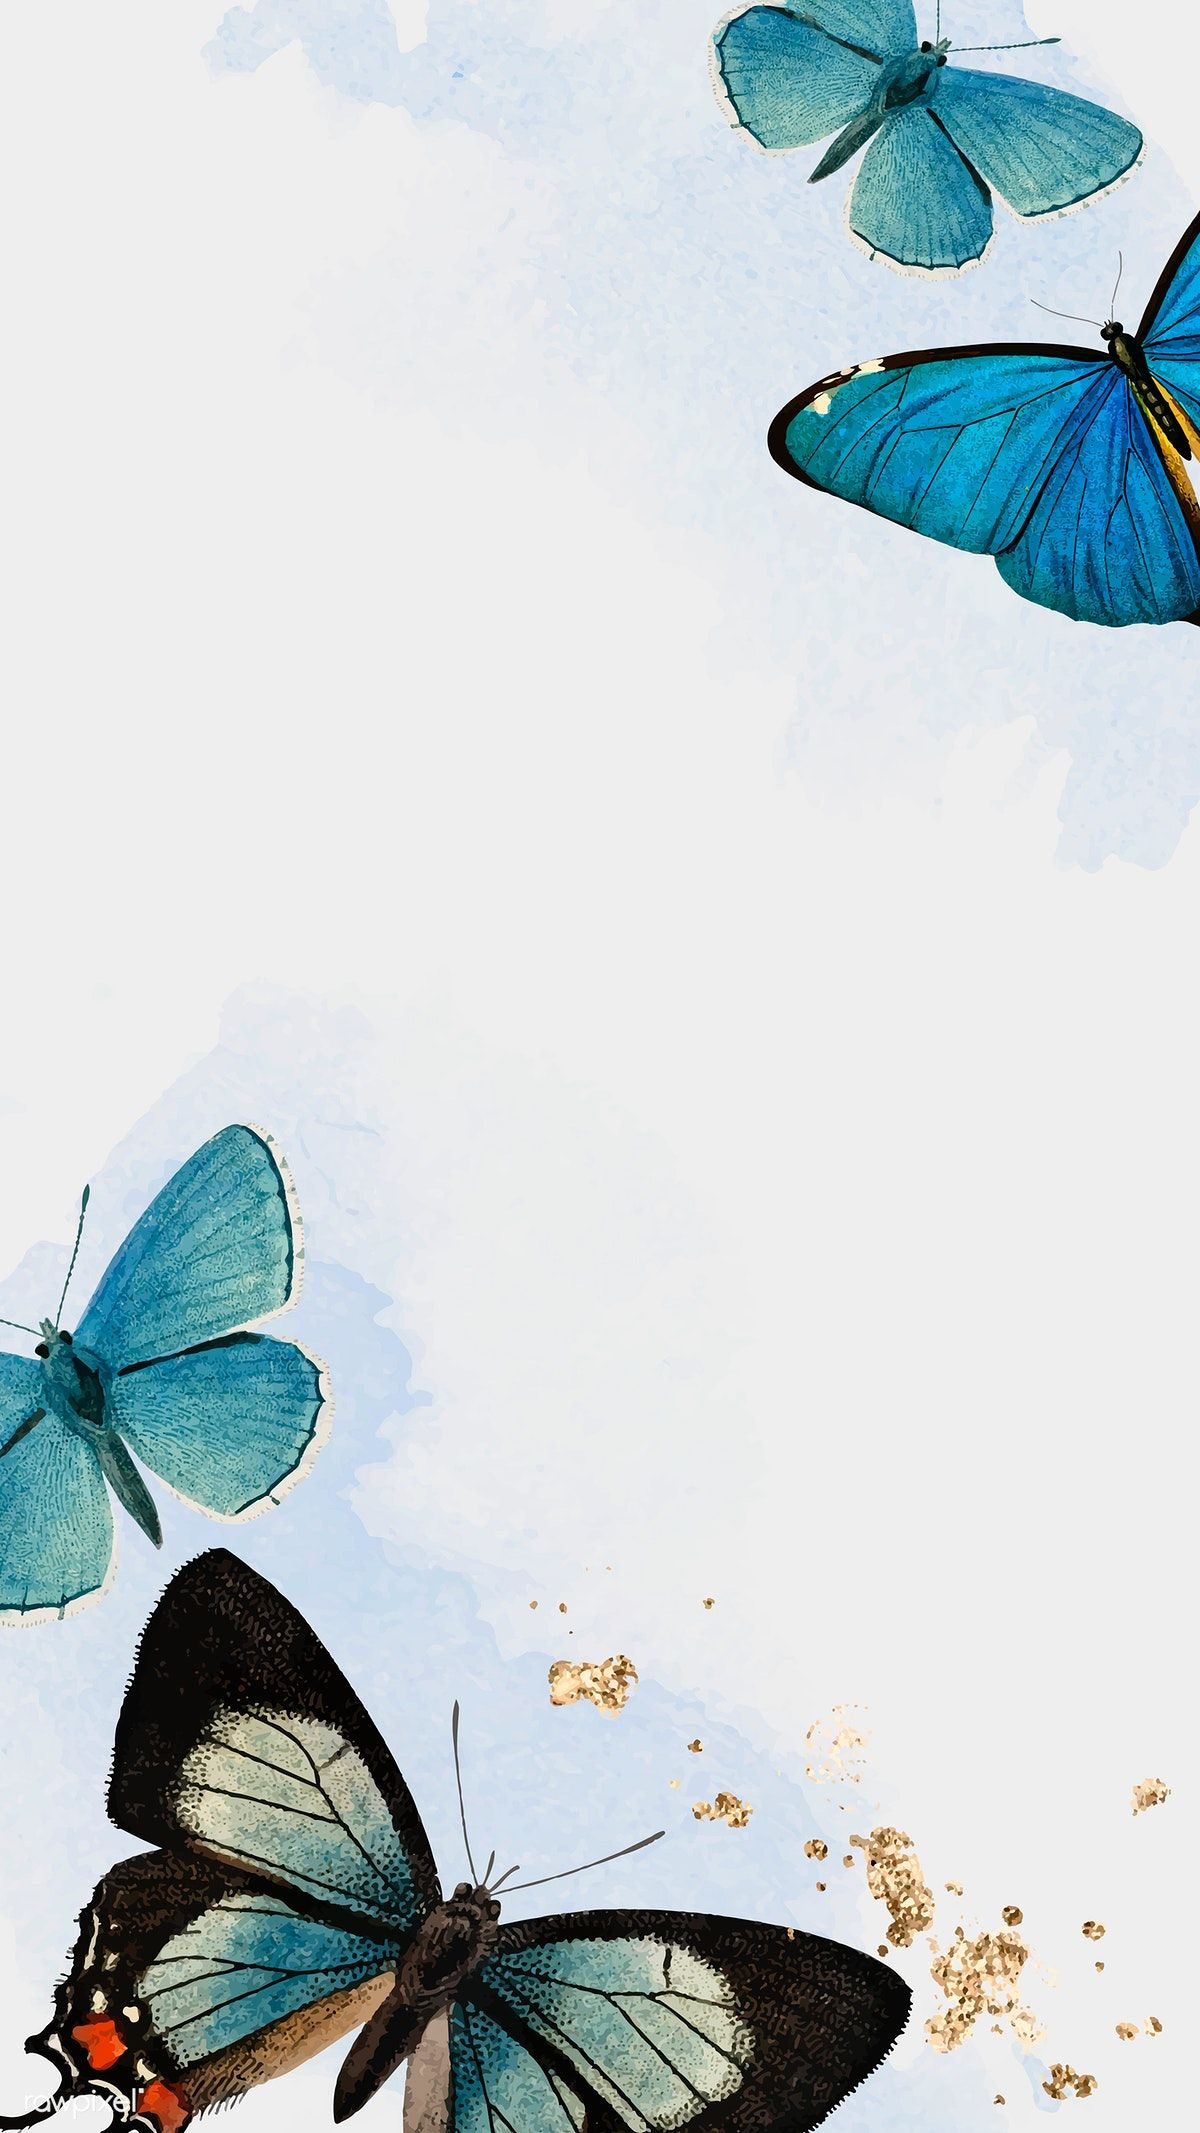 Download premium vector of Blue butterflies patterned mobile phone wallpaper vector by Kul about butterfly background, vintage butterfly, background, butterfly, and Butterflies watercolor 1222326